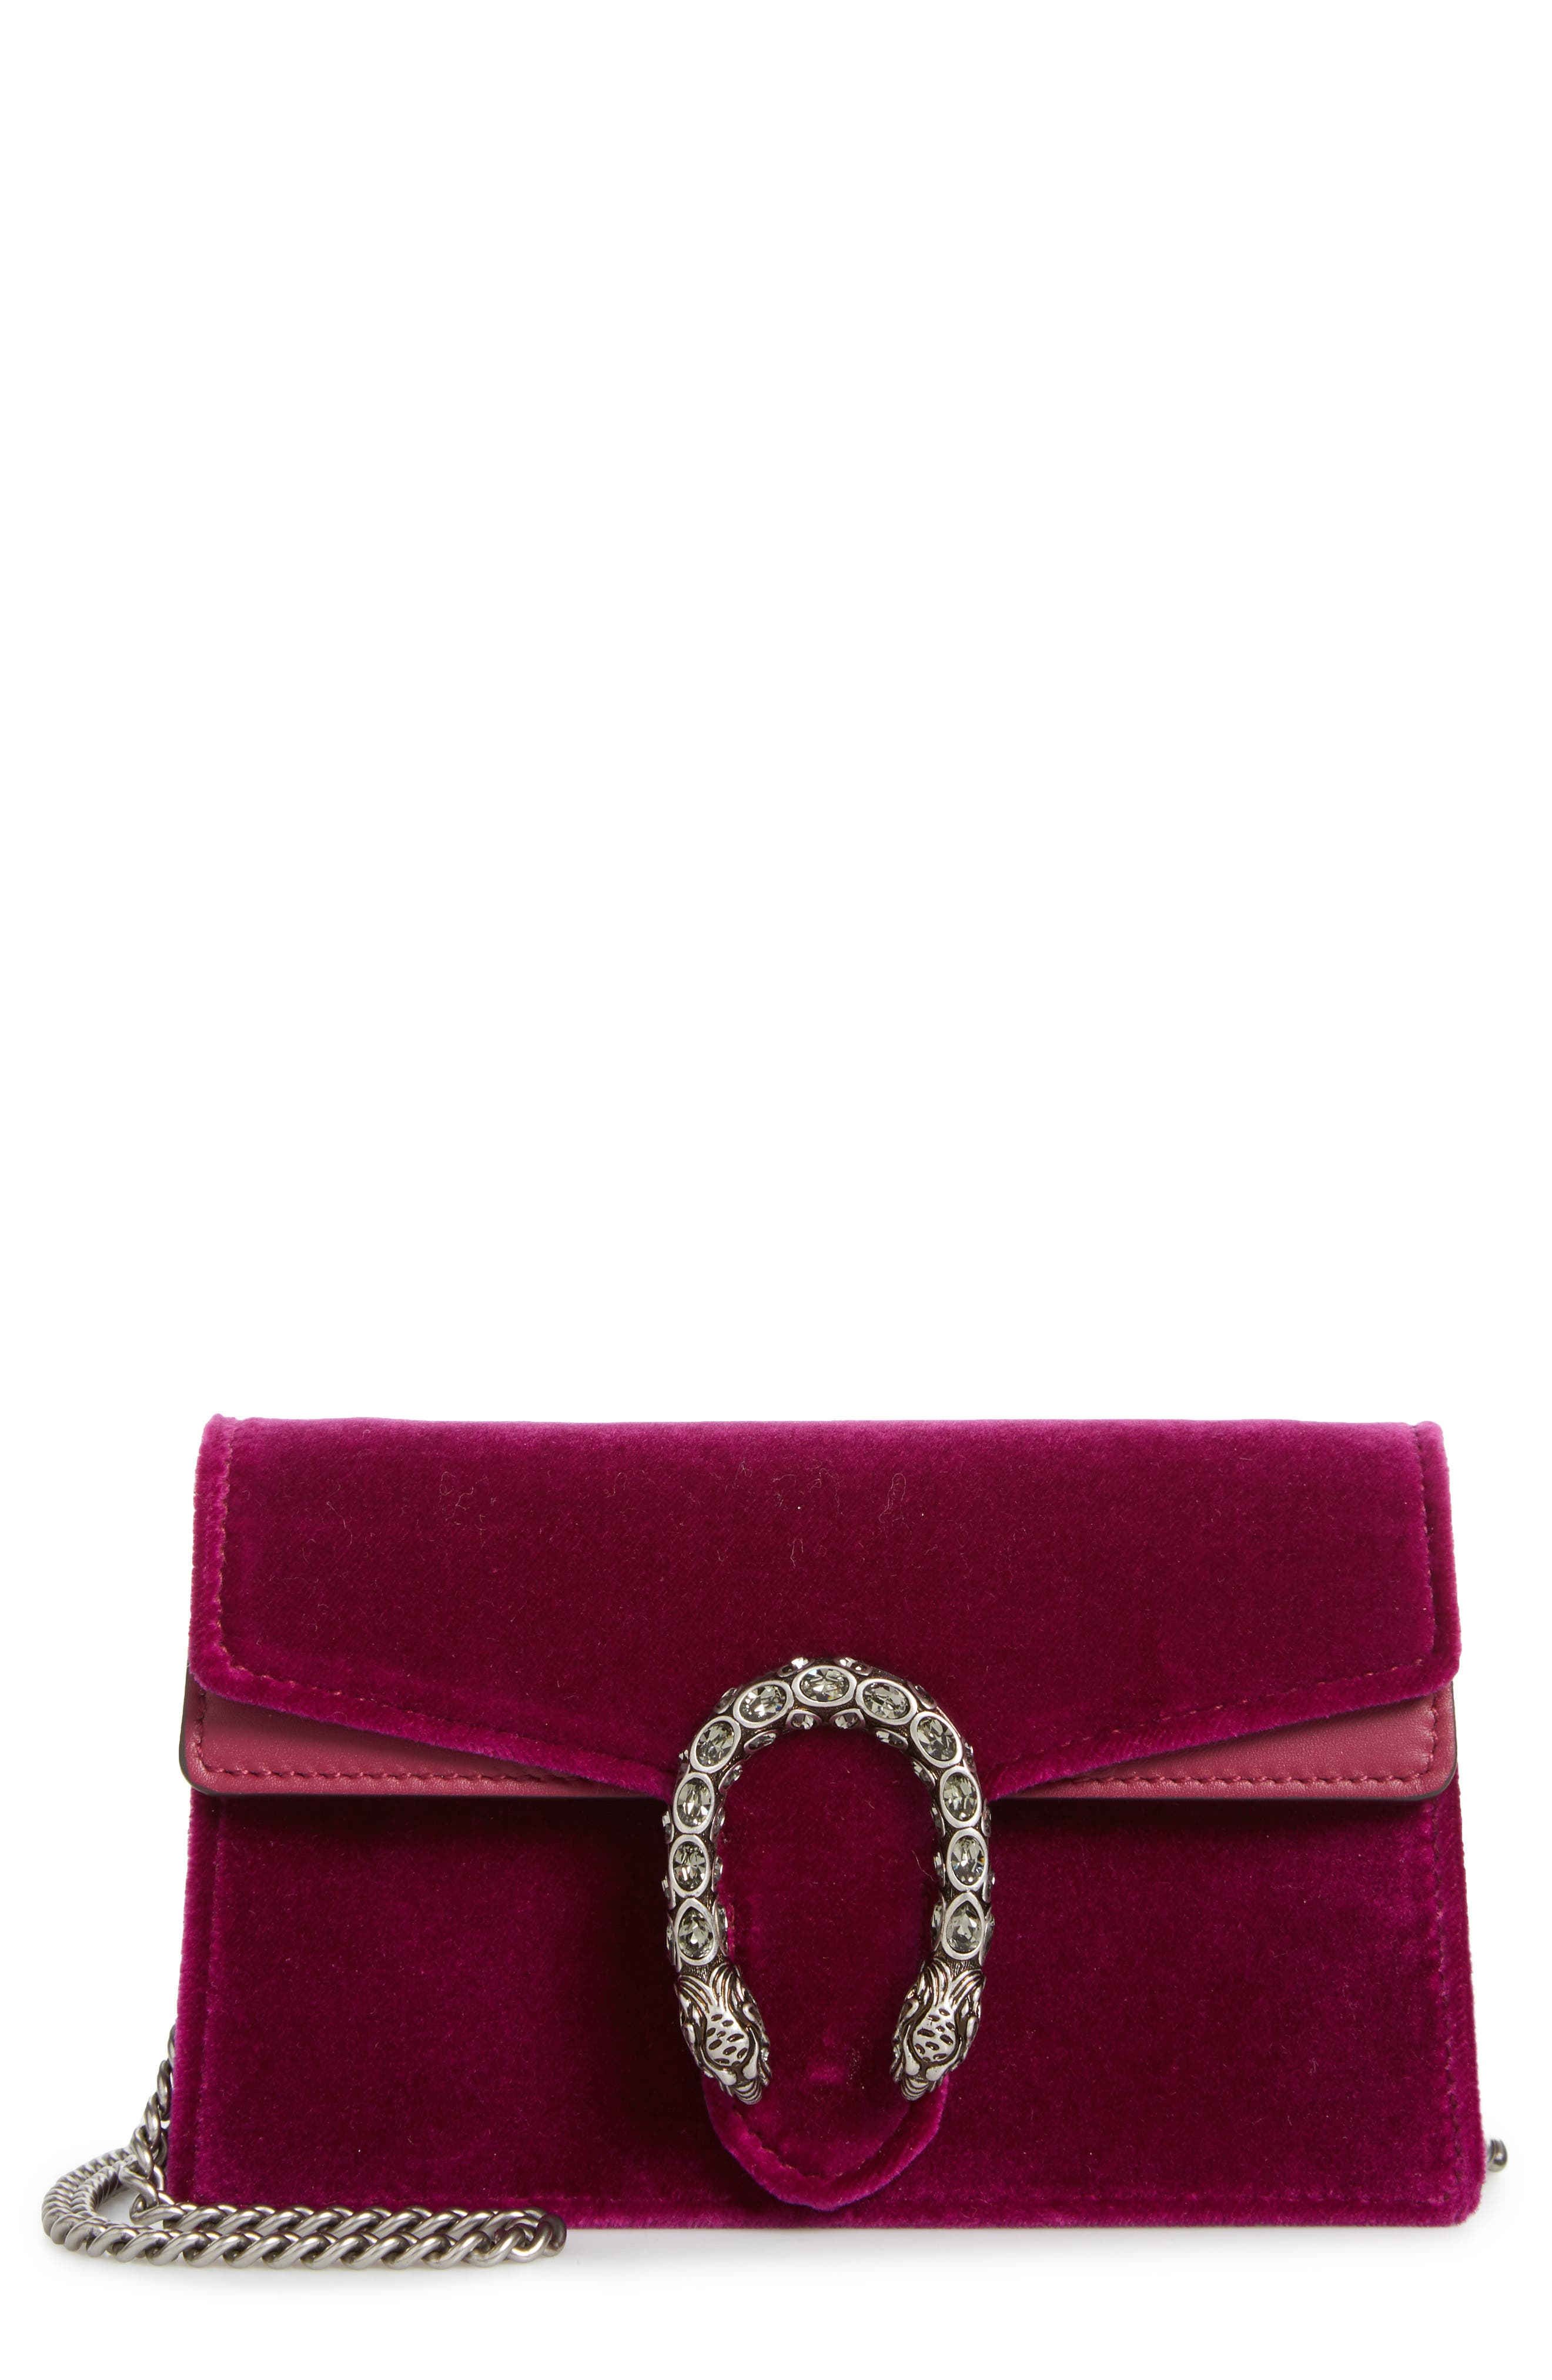 Gucci Super Mini Dionysus Velvet Shoulder Bag